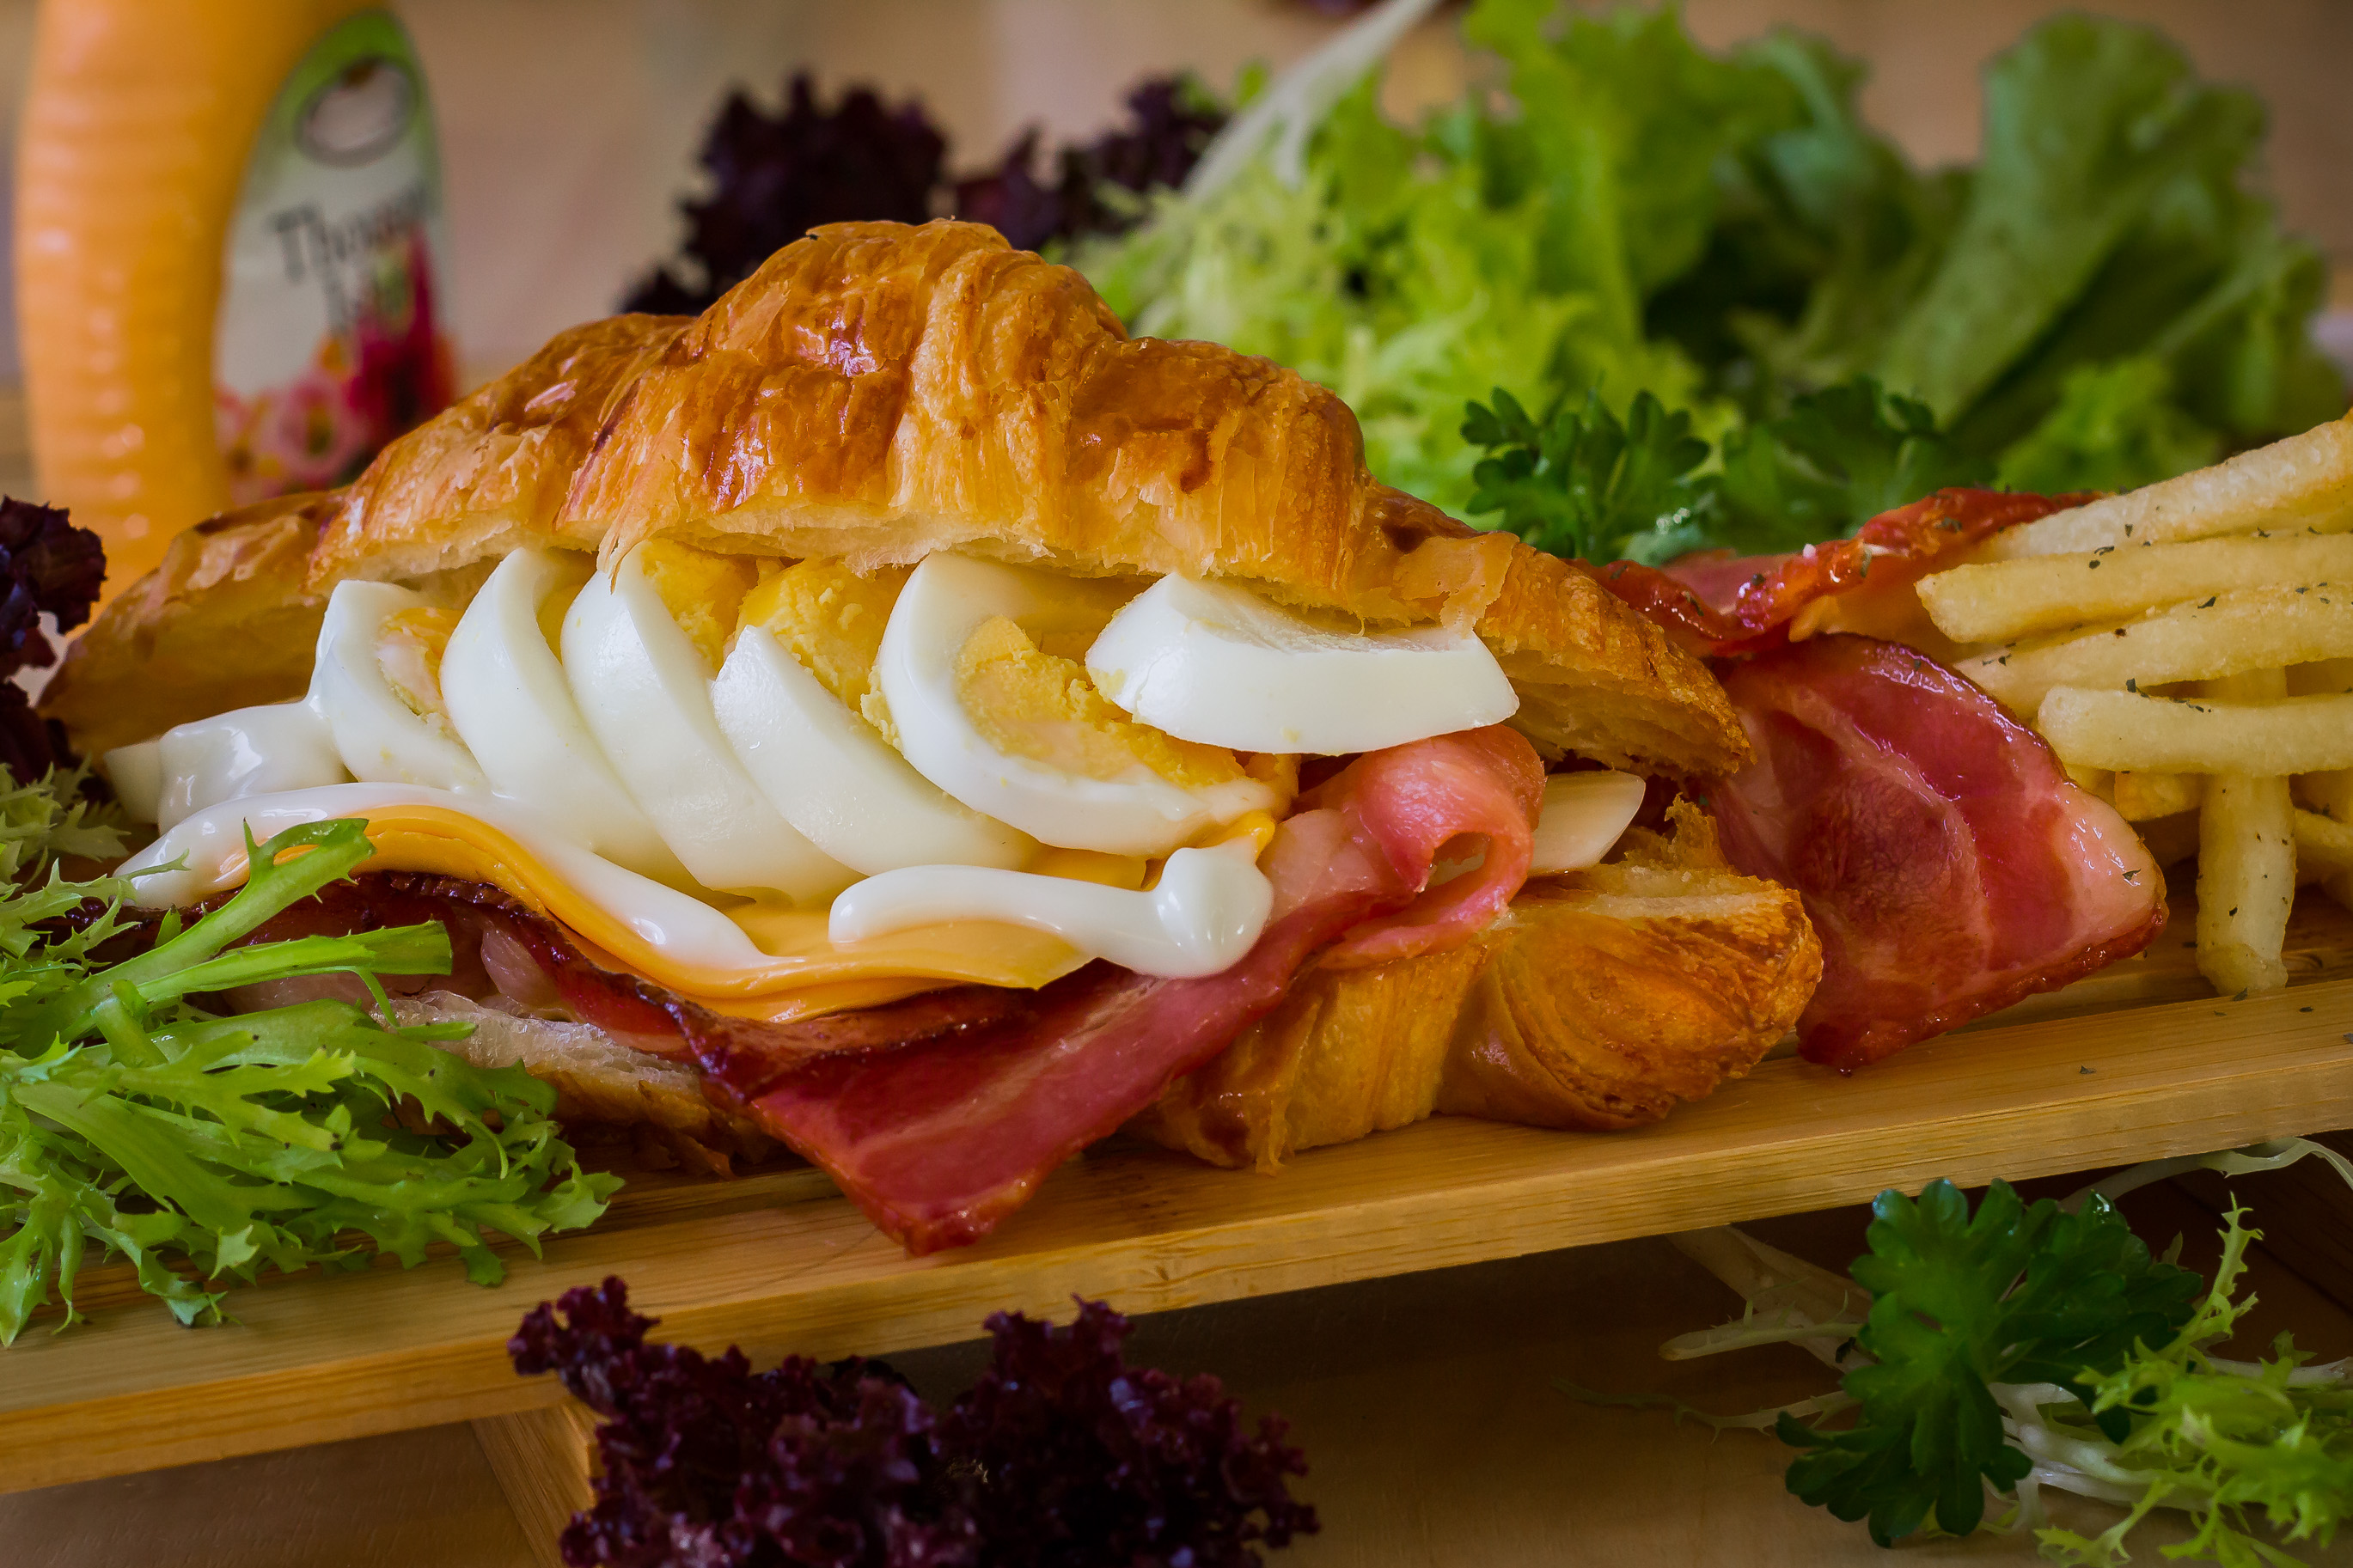 Croissant with bacon and egg